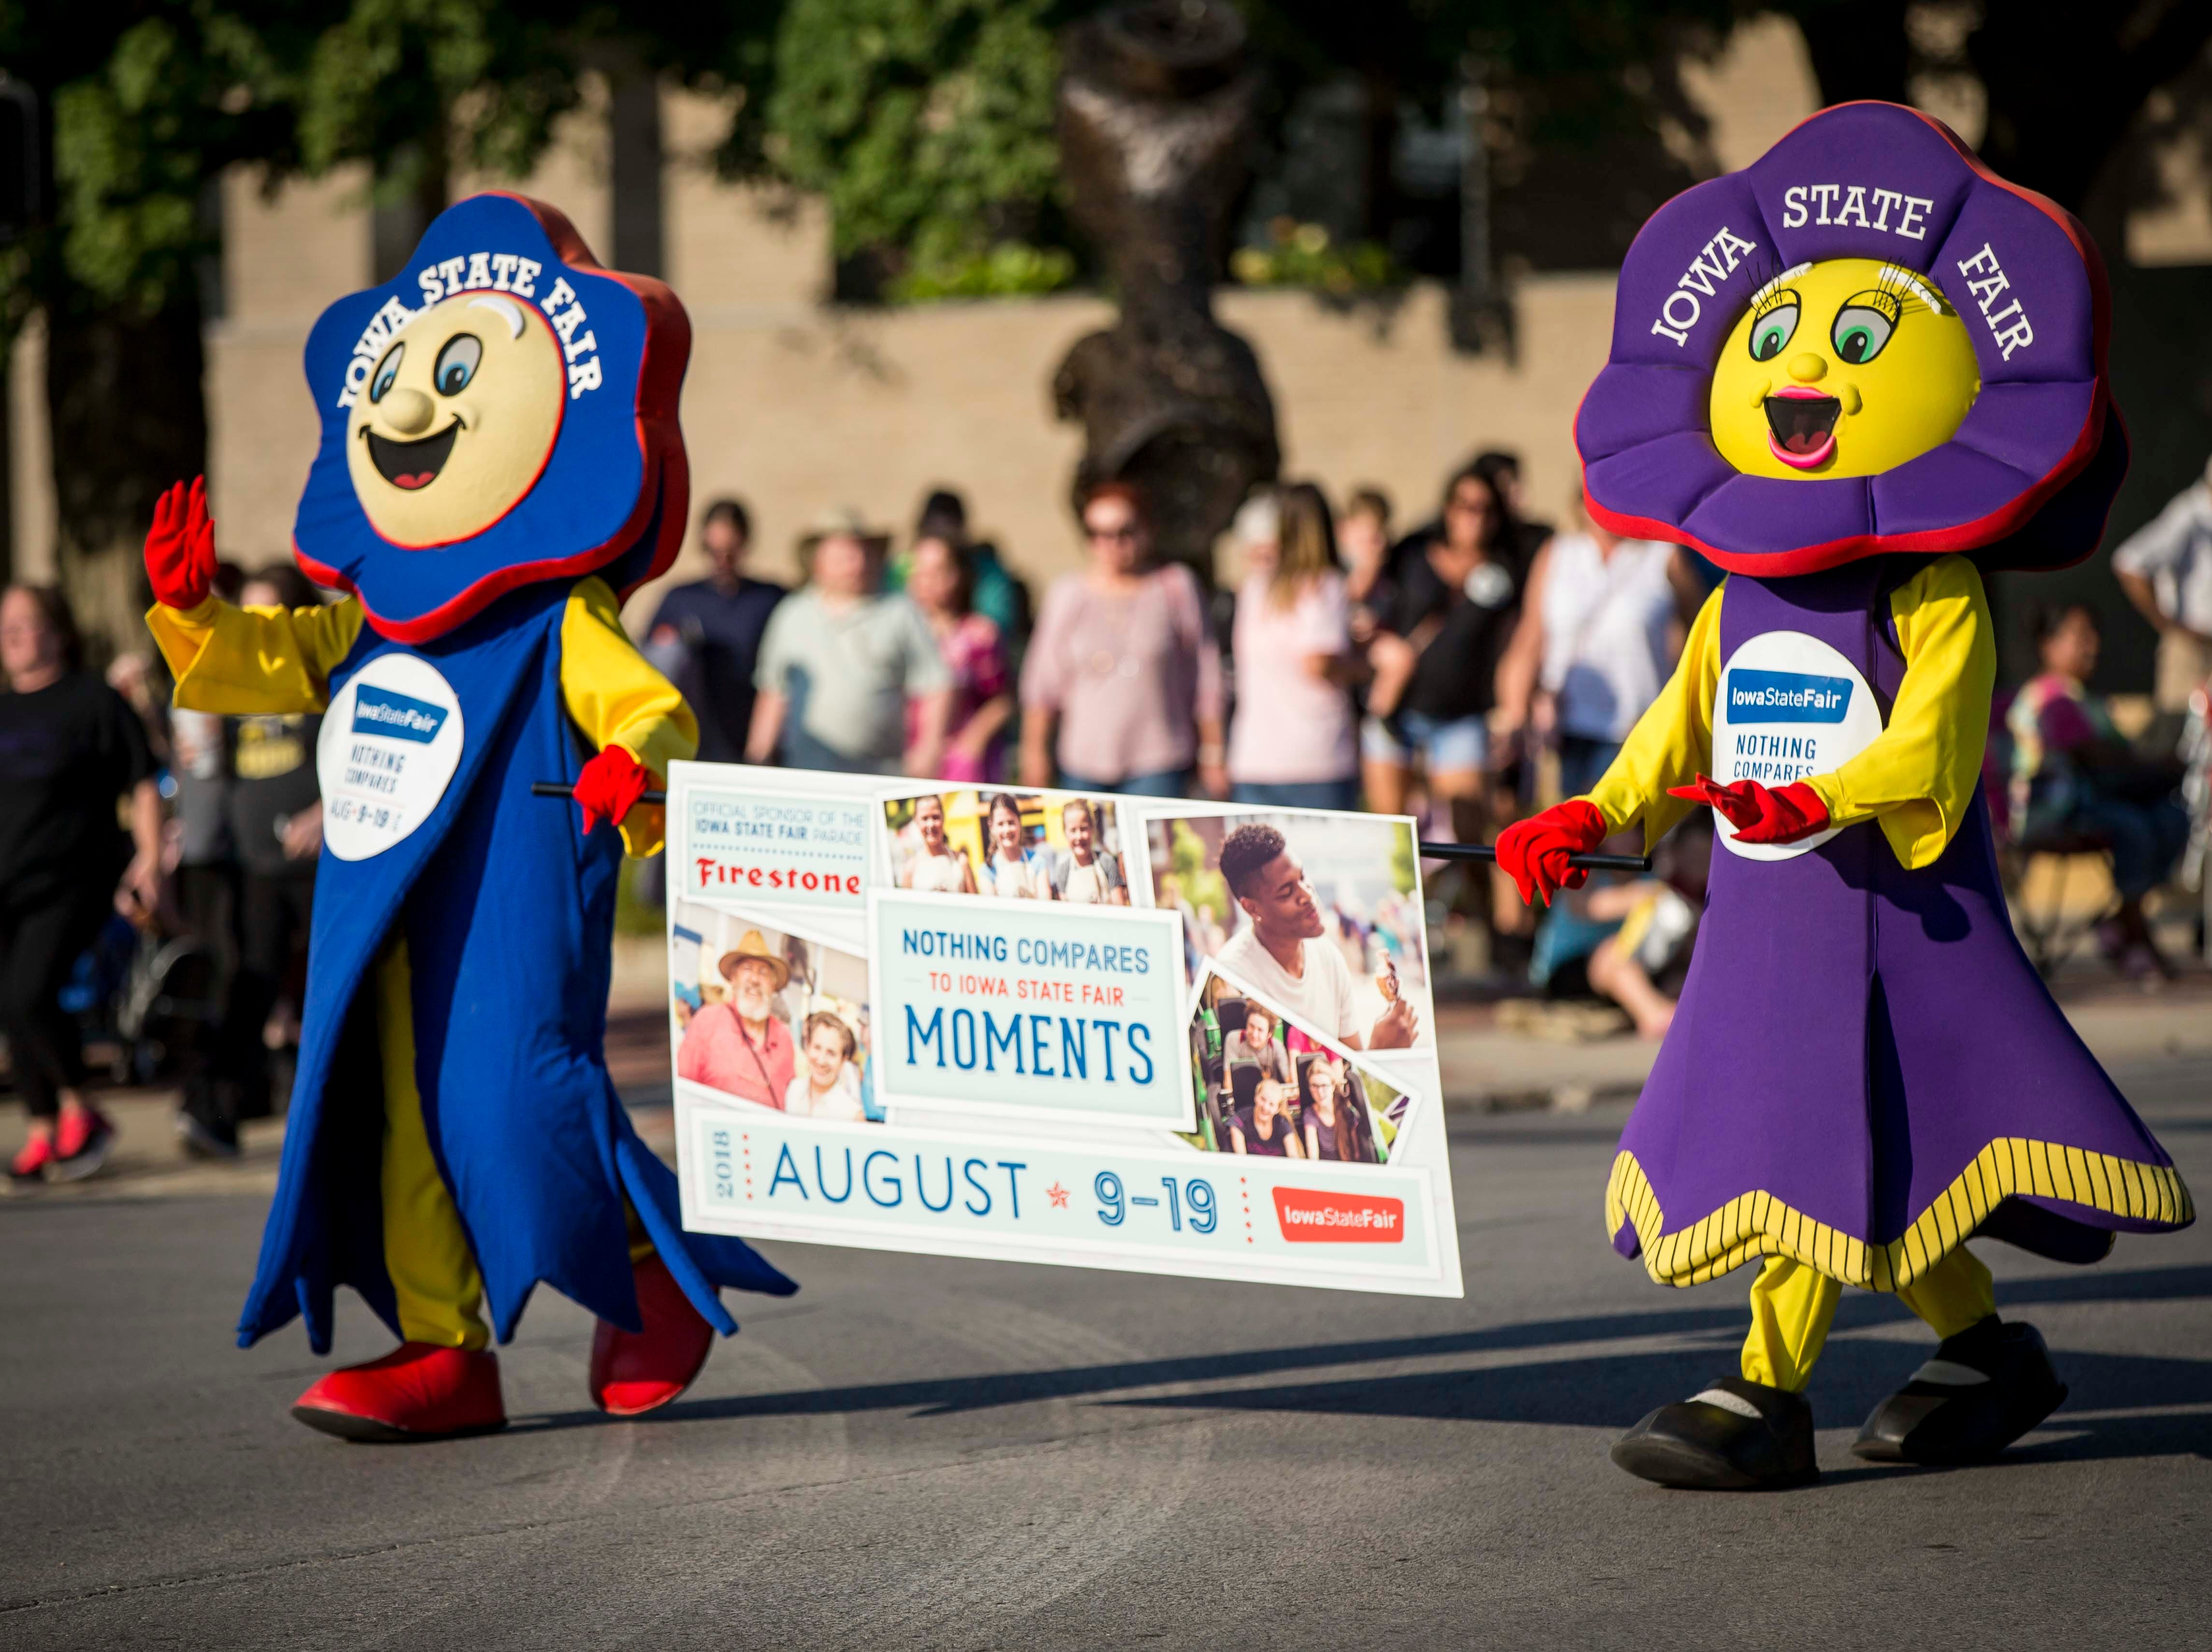 Blue Ribbon mascots Fairfield and Rosetta lead the 2018 Iowa State Fair parade from the Statehouse to downtown Des Moines Wednesday, Aug. 8, 2018. The Iowa State Fair runs from Aug. 9Ð19.